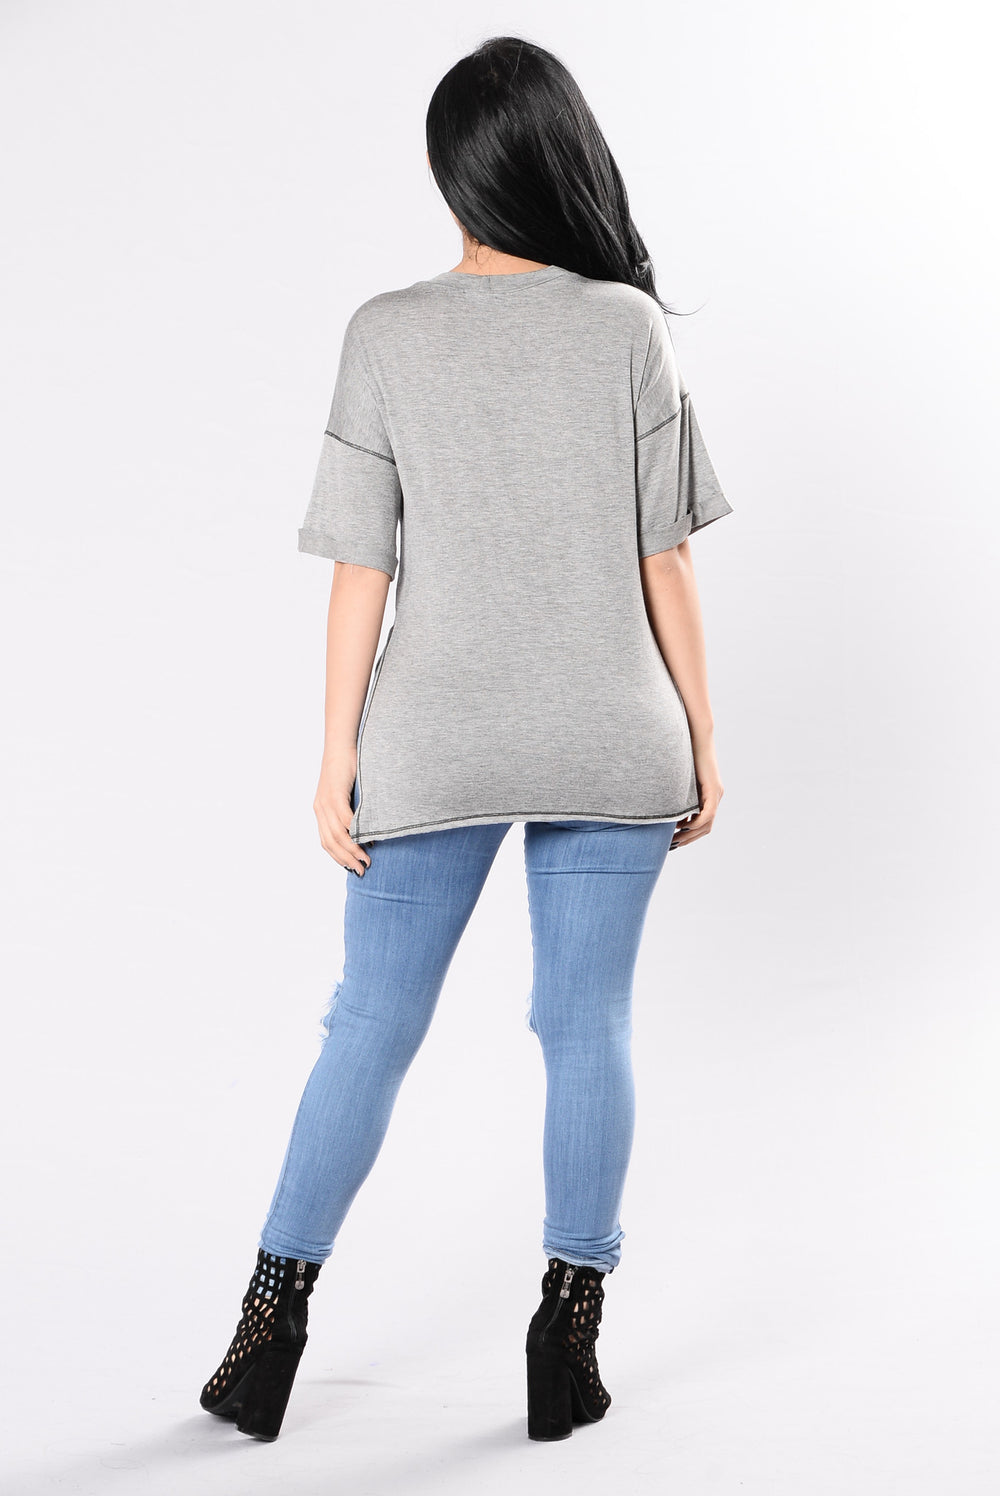 Incomplete Top - Grey